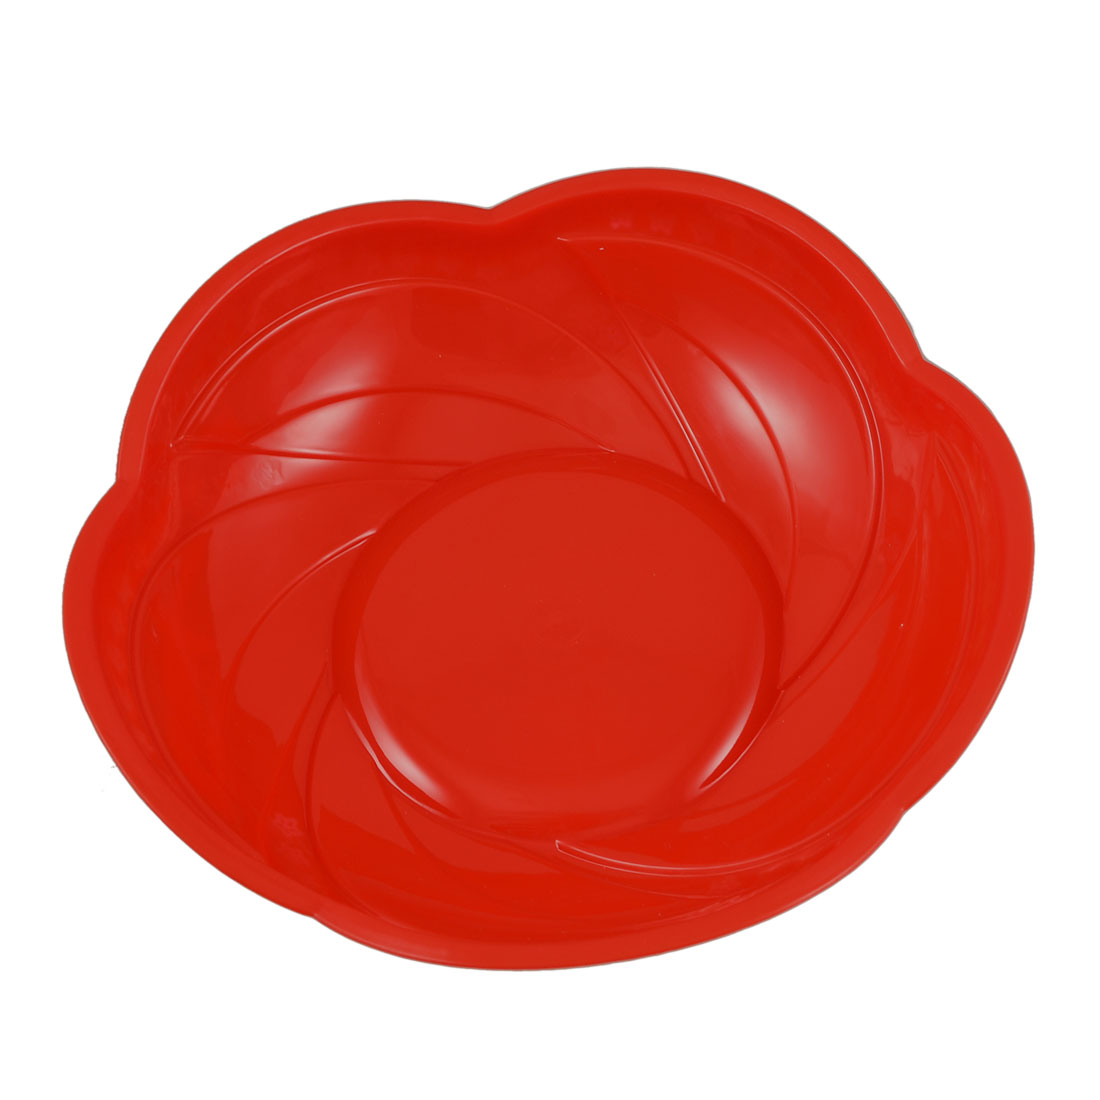 Kitchen Red Plastic Flower Shaped Fruits Washing Container Plate